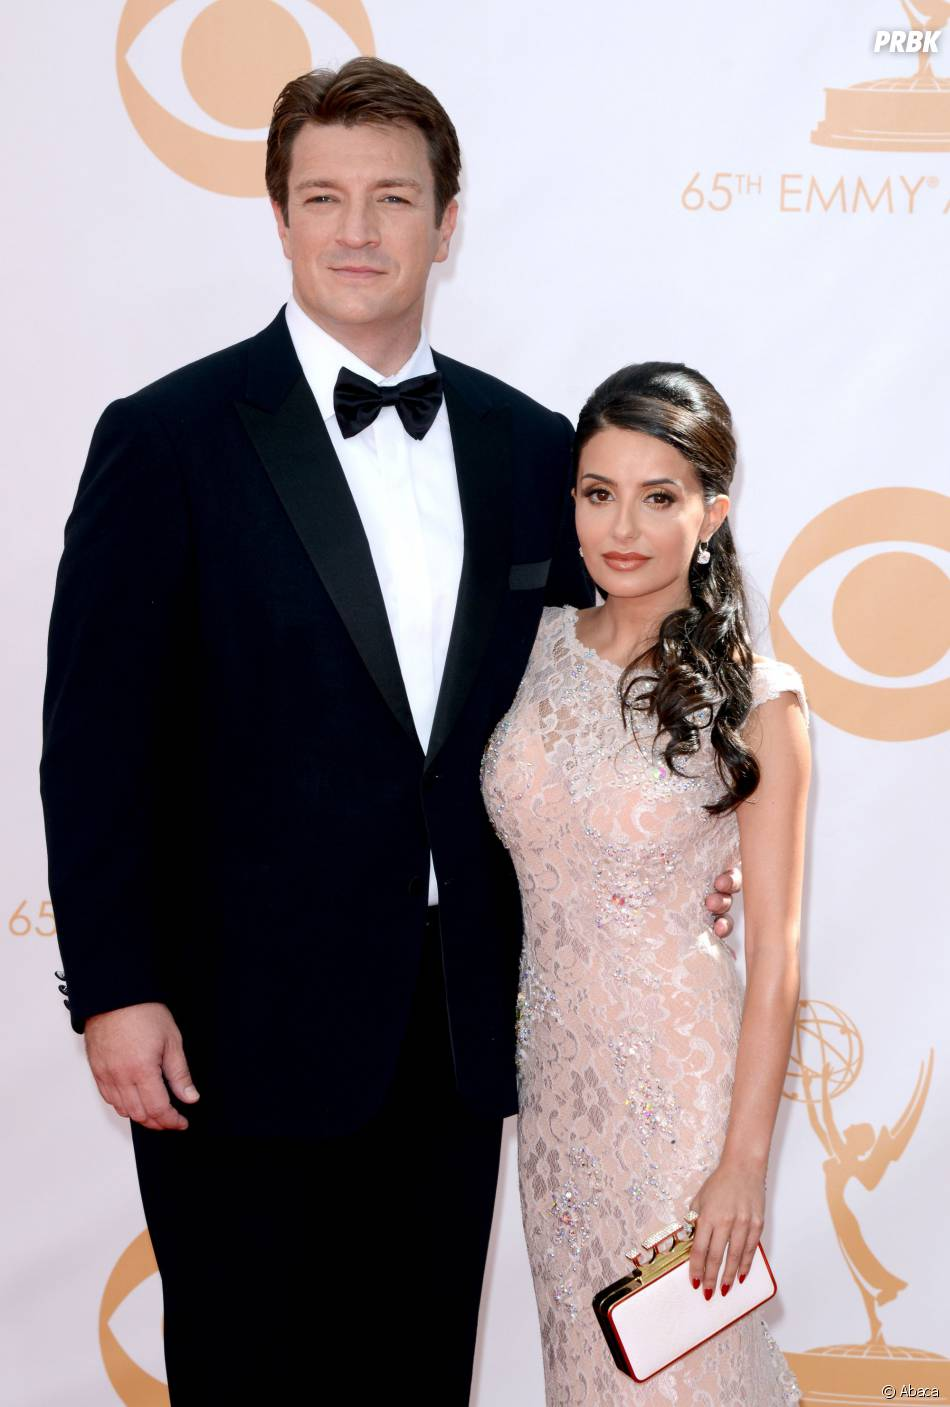 Nathan Fillion et Mikaela Hoover aux Emmy Awards 2013 le 22 septembre 2013 à Los Angeles